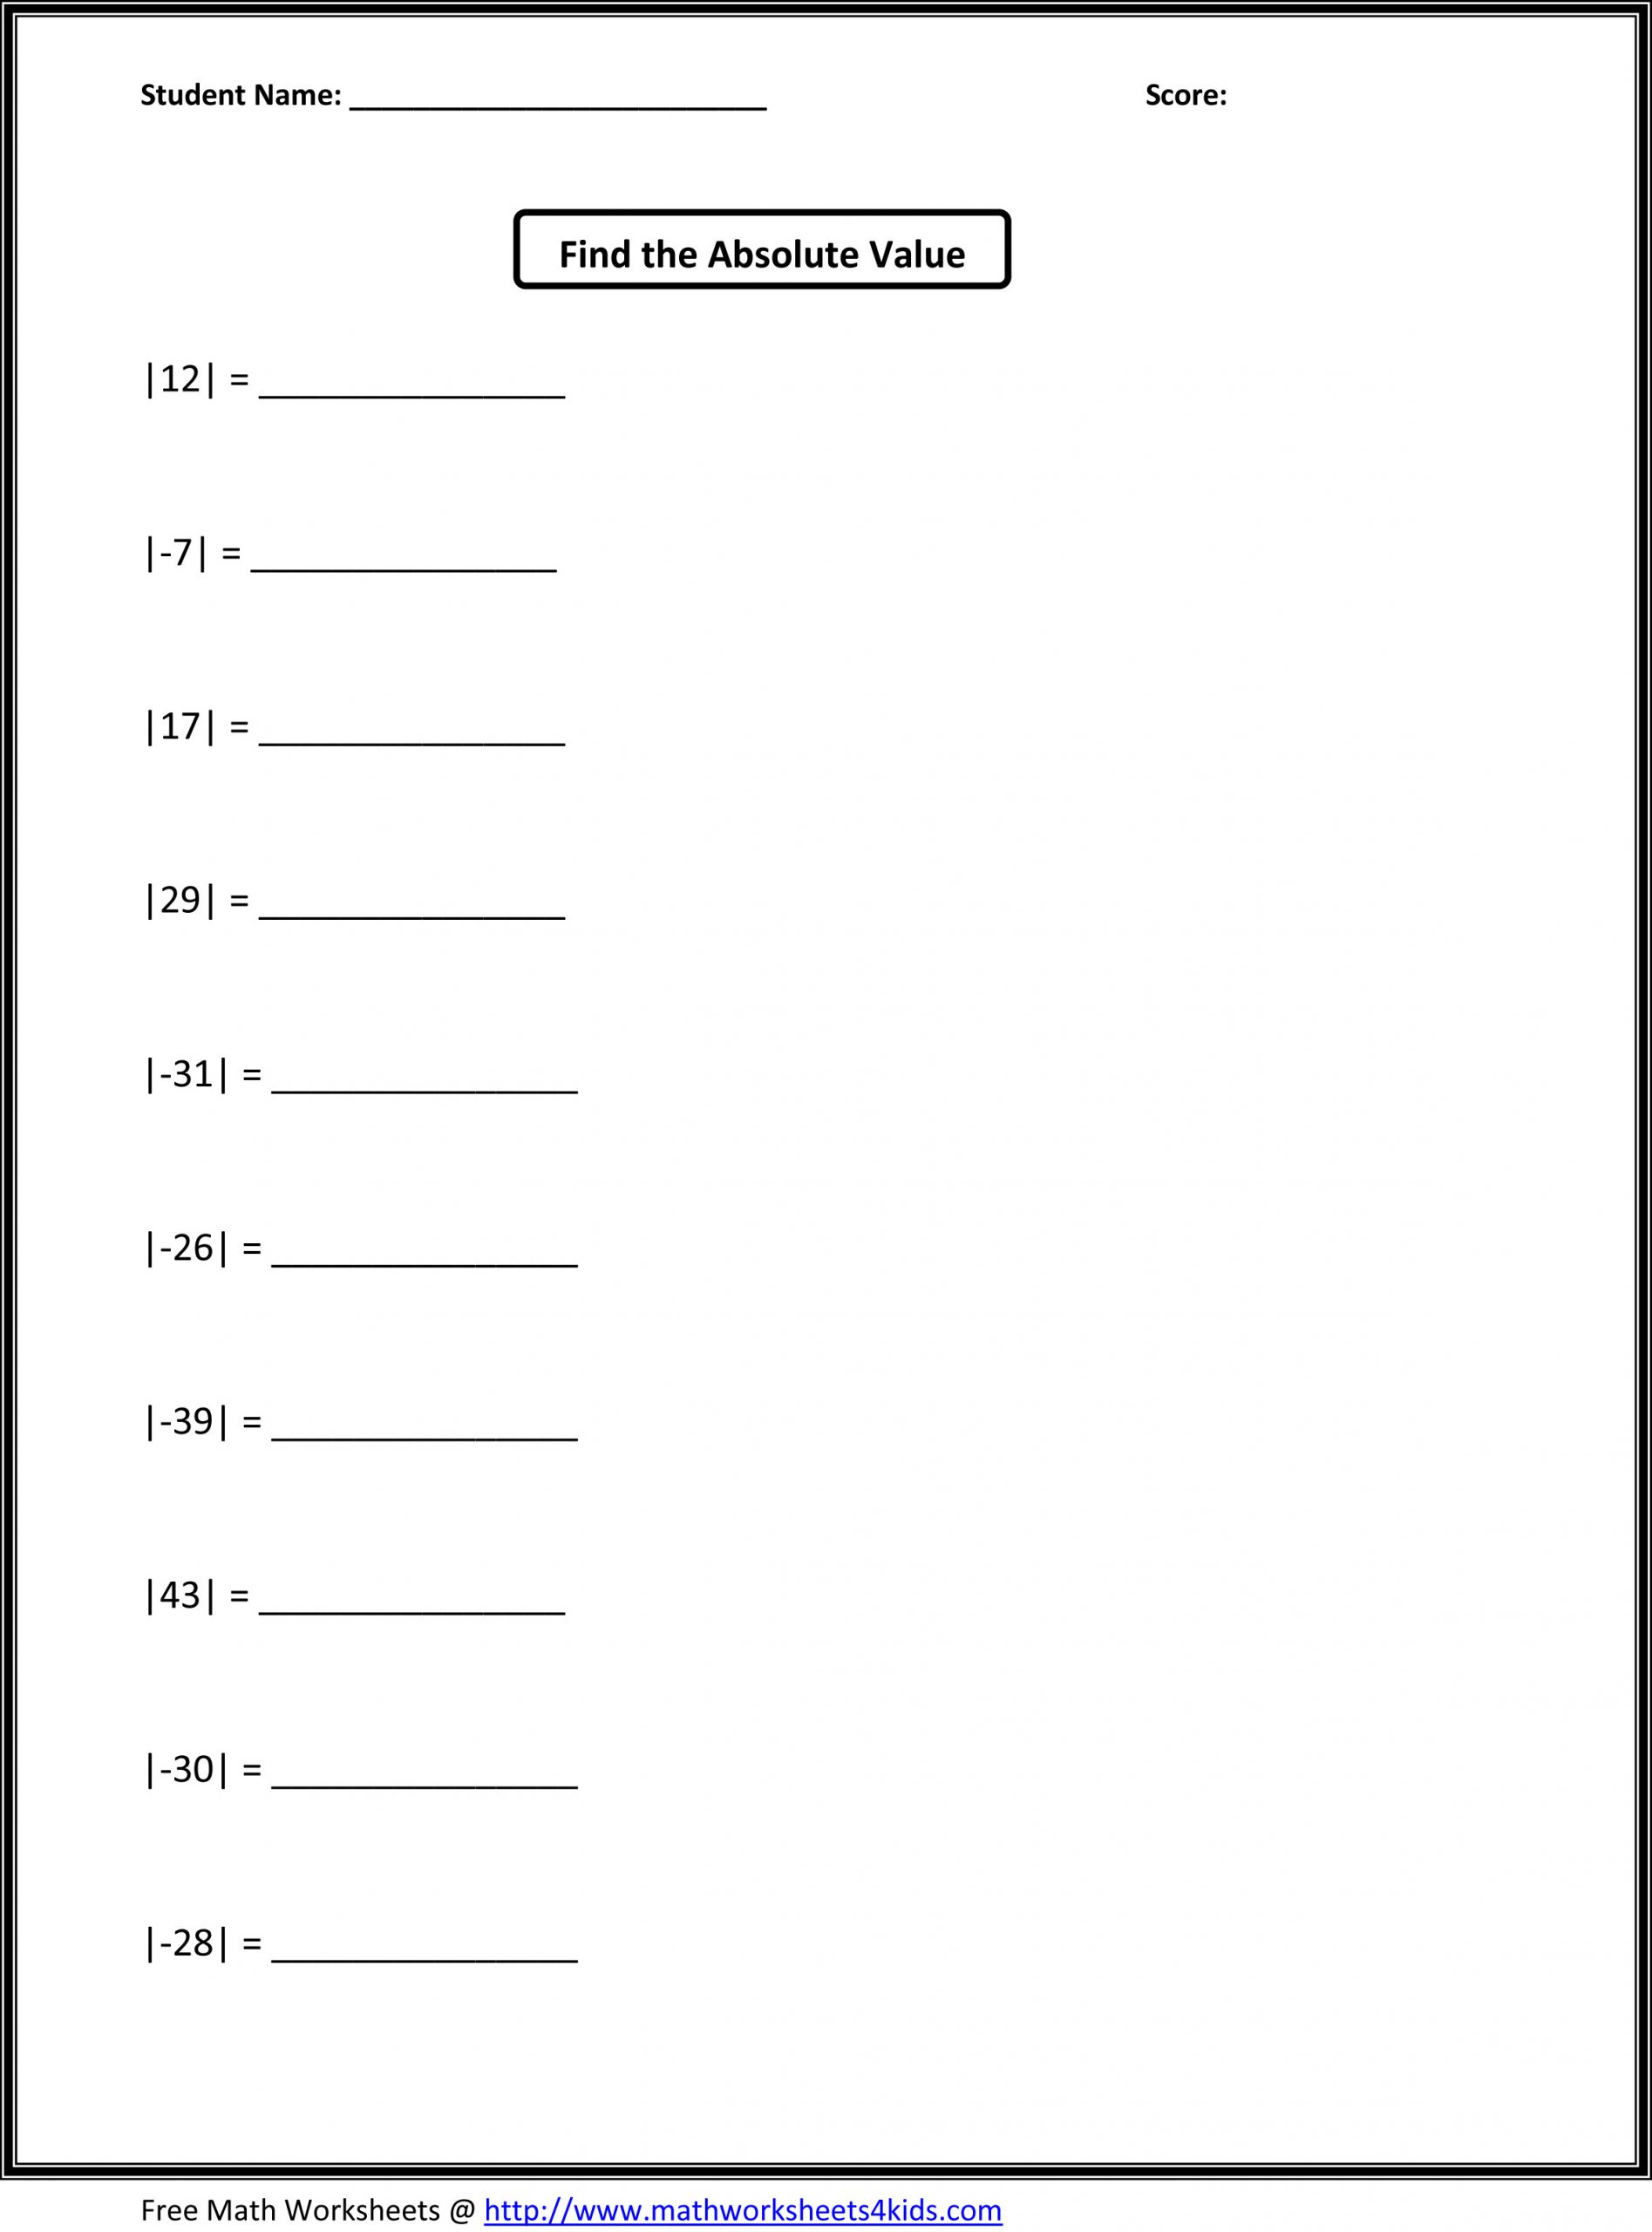 Absolute Value Worksheets 6th Grade Absolute Value Lessons Tes Teach